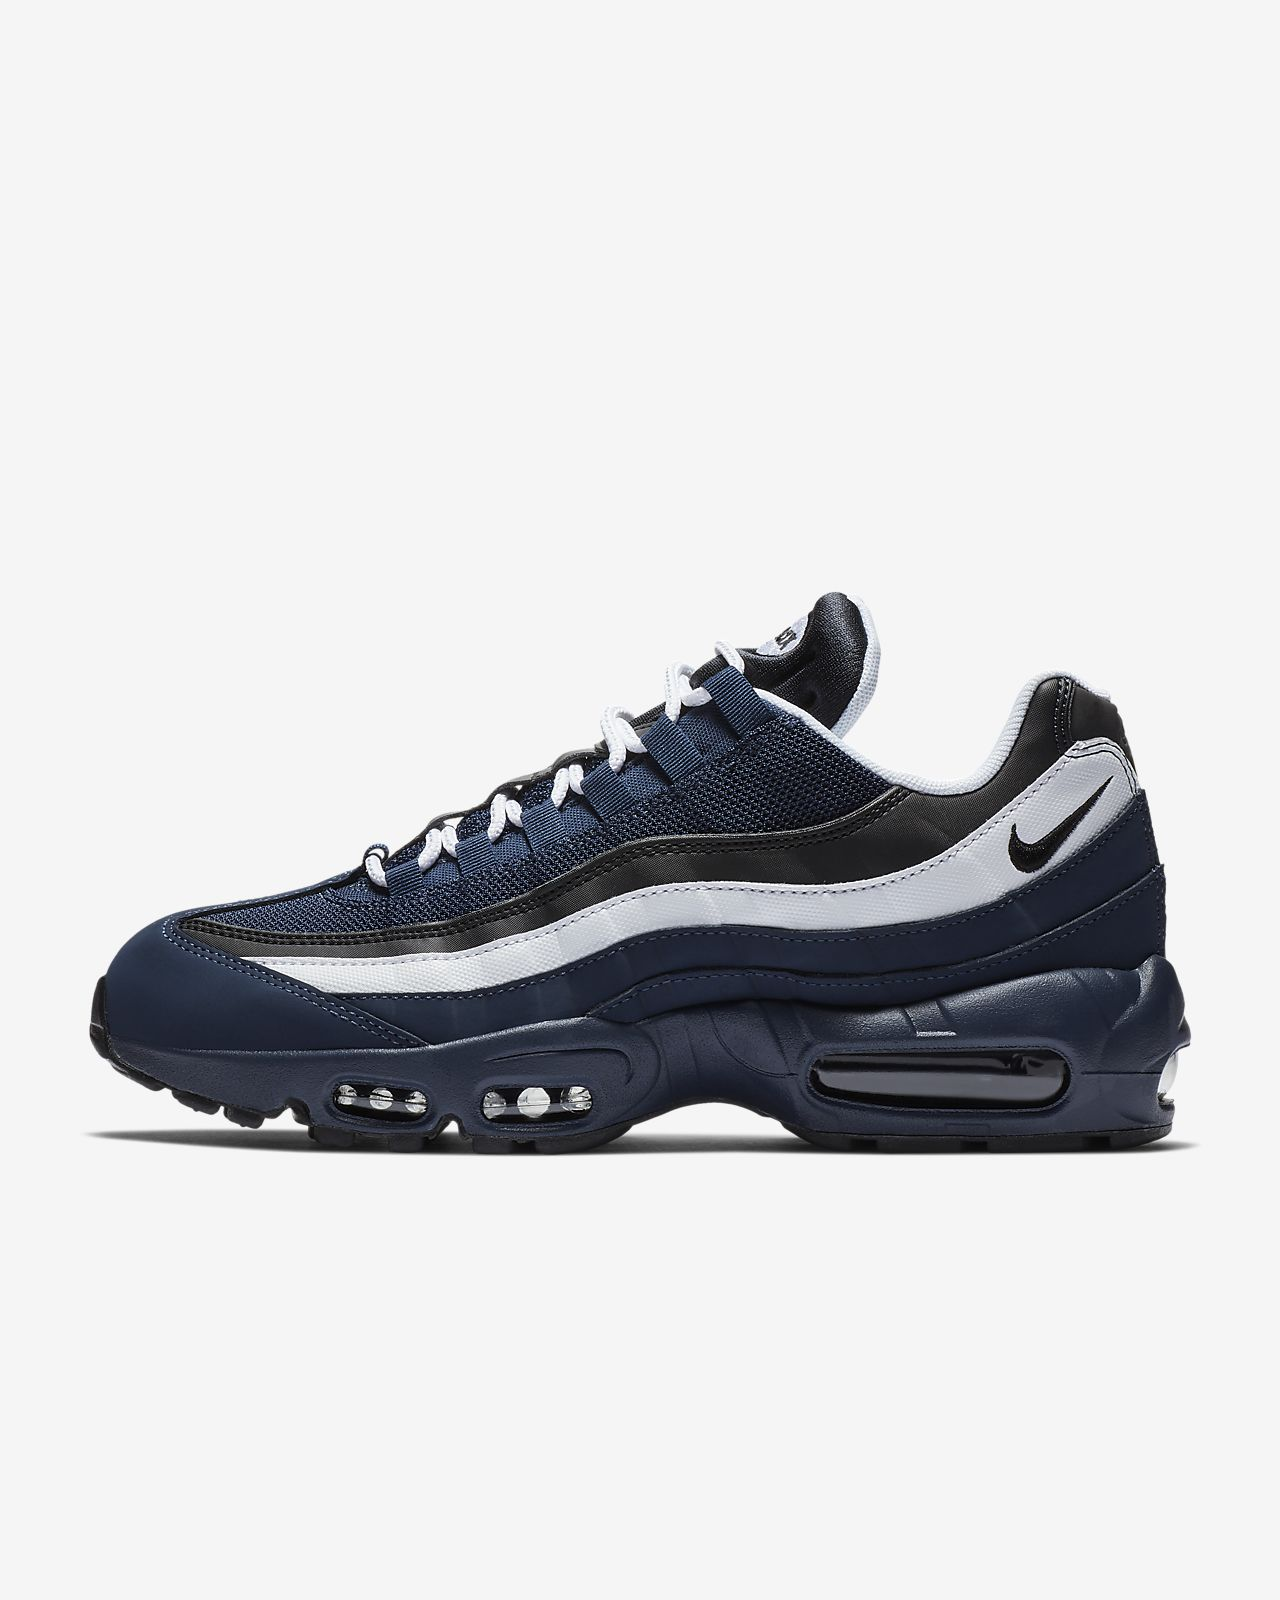 buy online 68753 1cfb0 ... Nike Air Max 95 Essential Mens Shoe